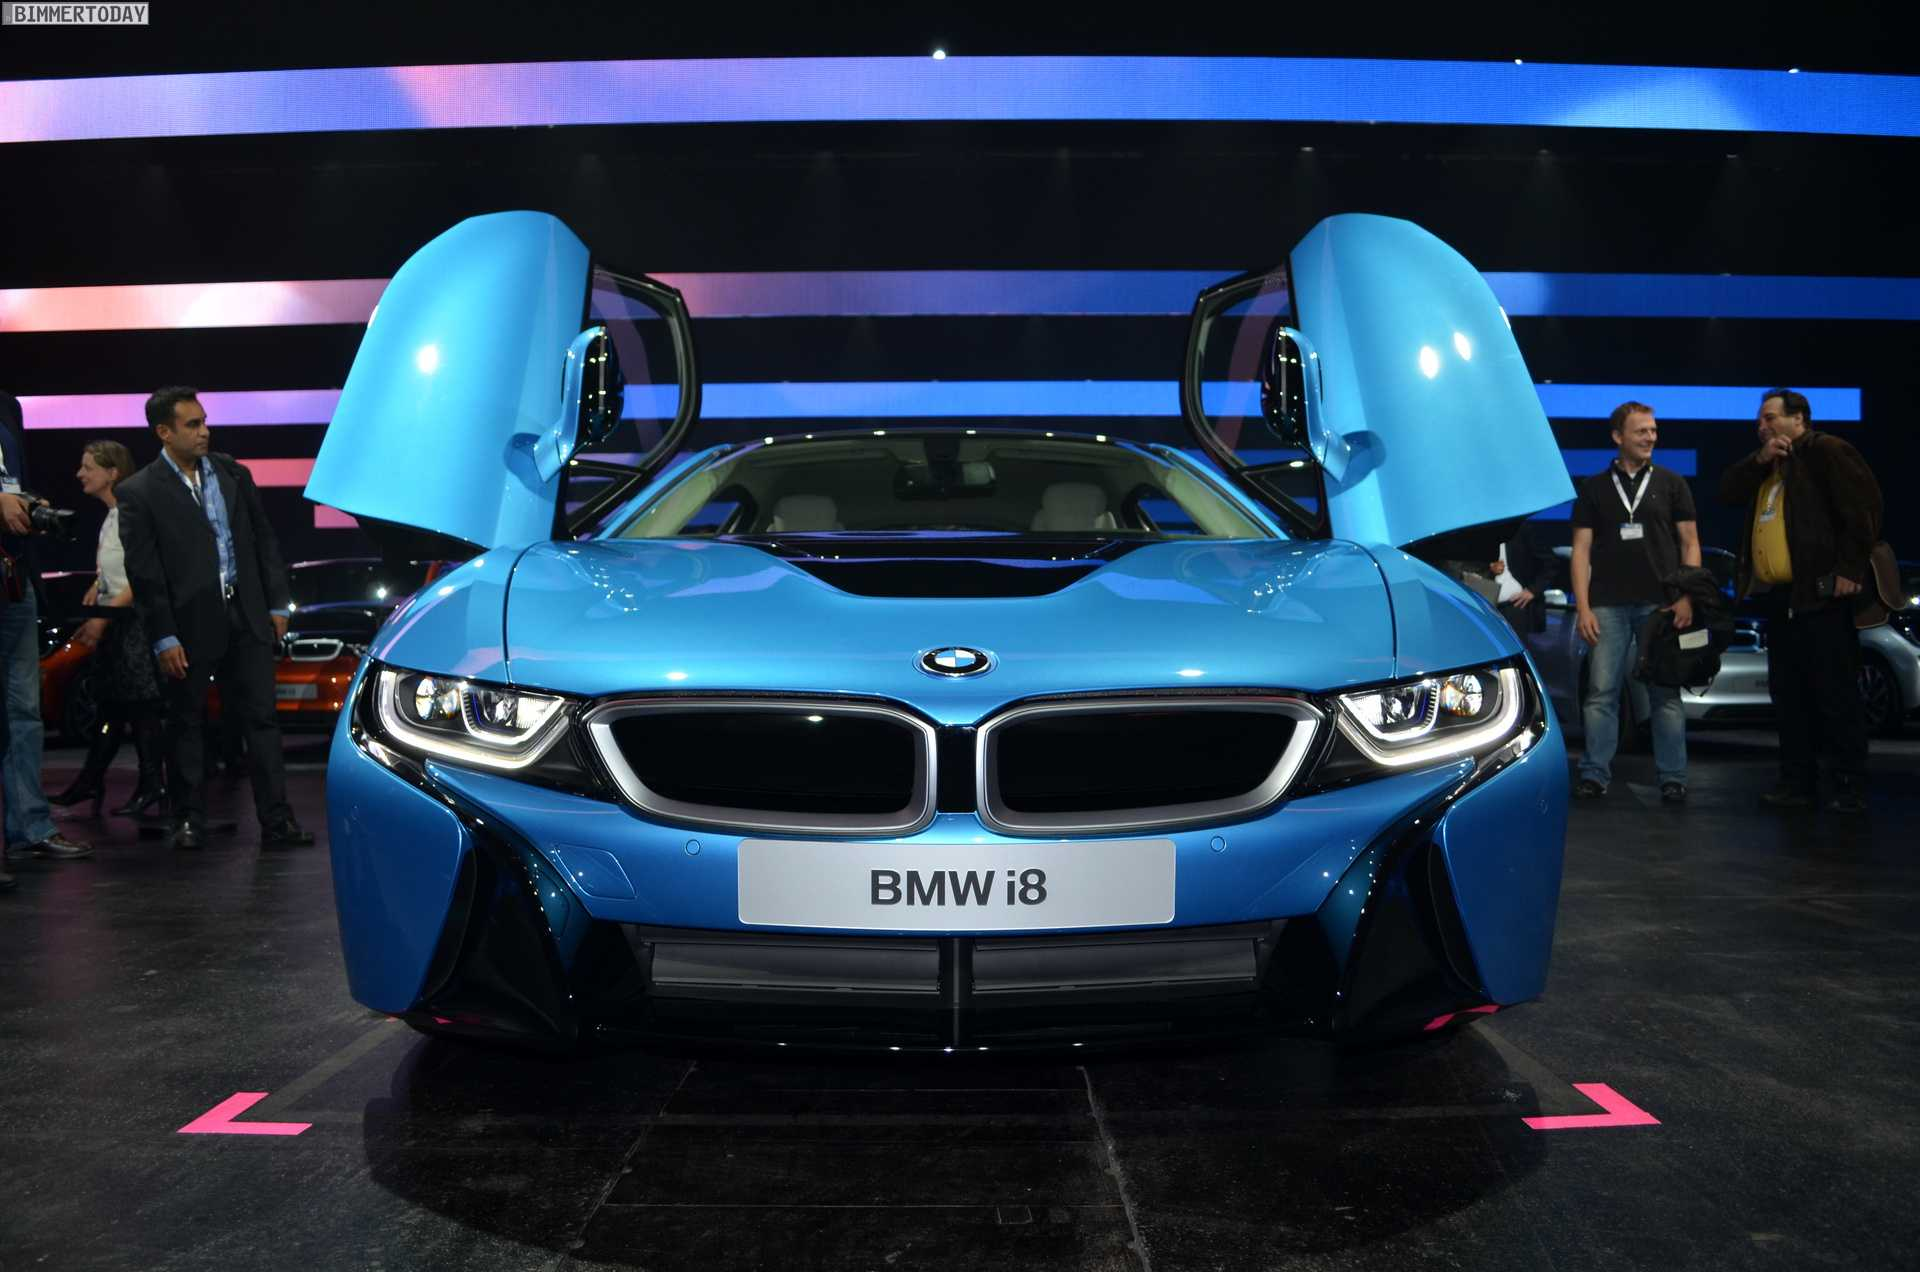 BMW 225xe and 330e Plug-in Hybrids are Powered by i8's eDrive Tech